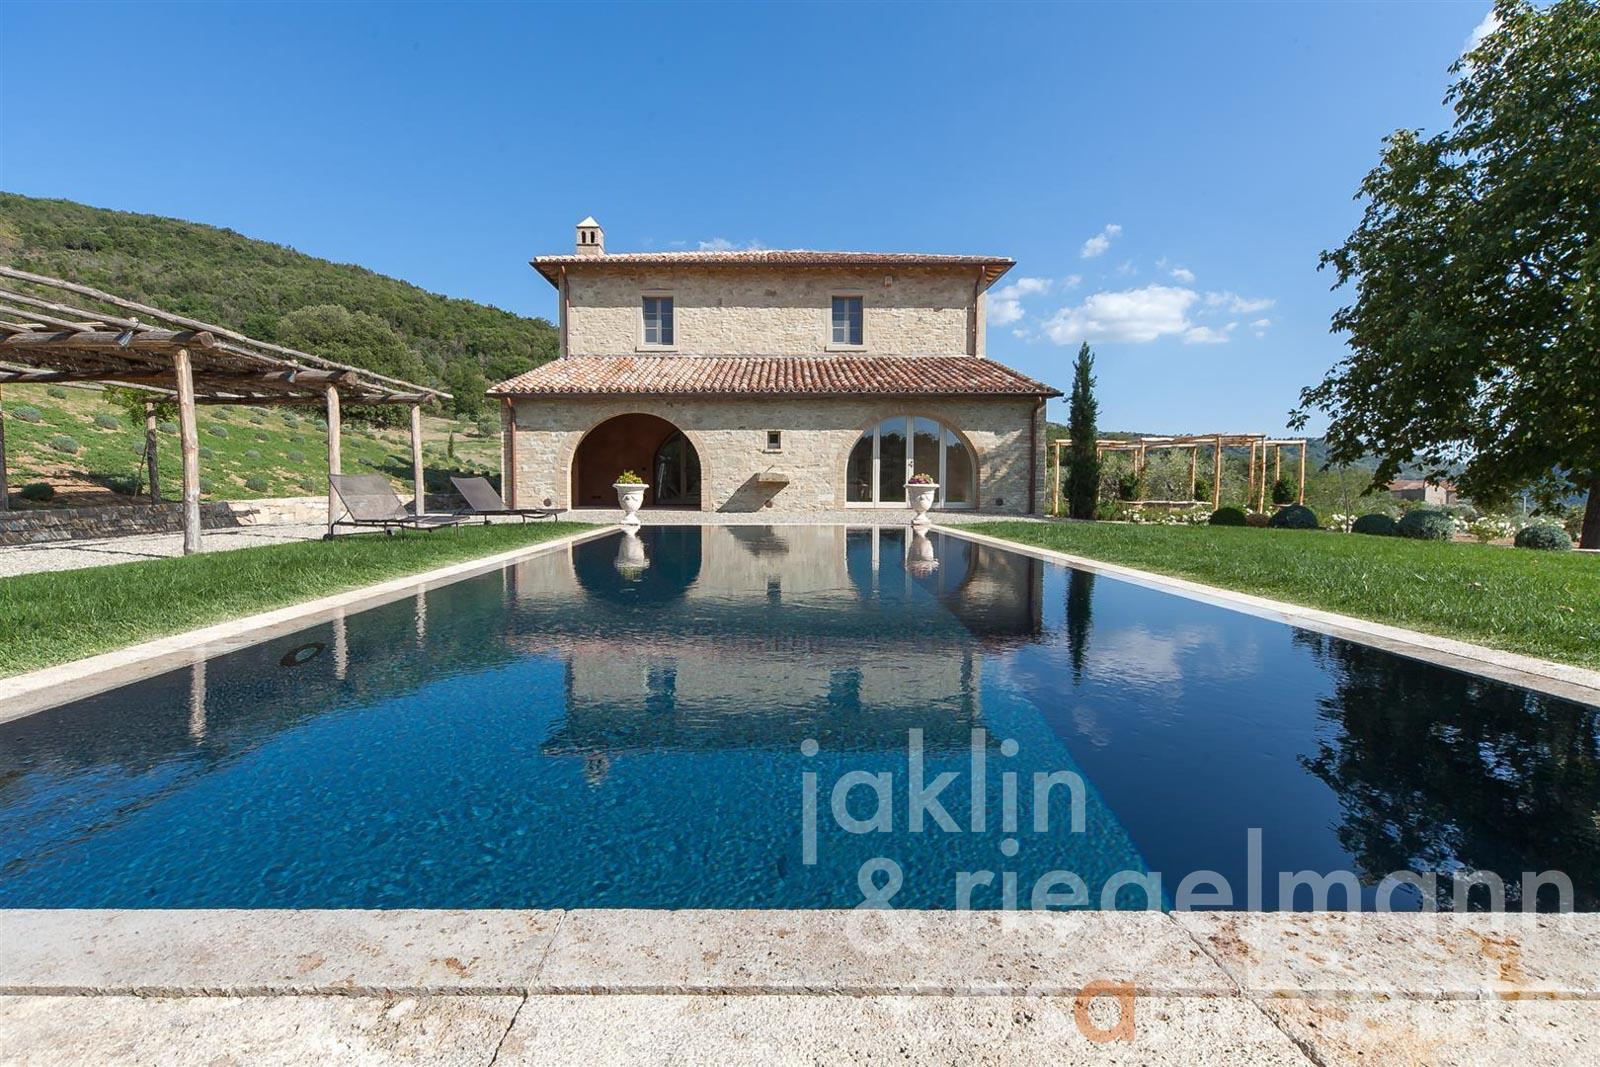 The premium country estate for sale with pool in panoramic setting close to Lago Trasimeno in Umbria